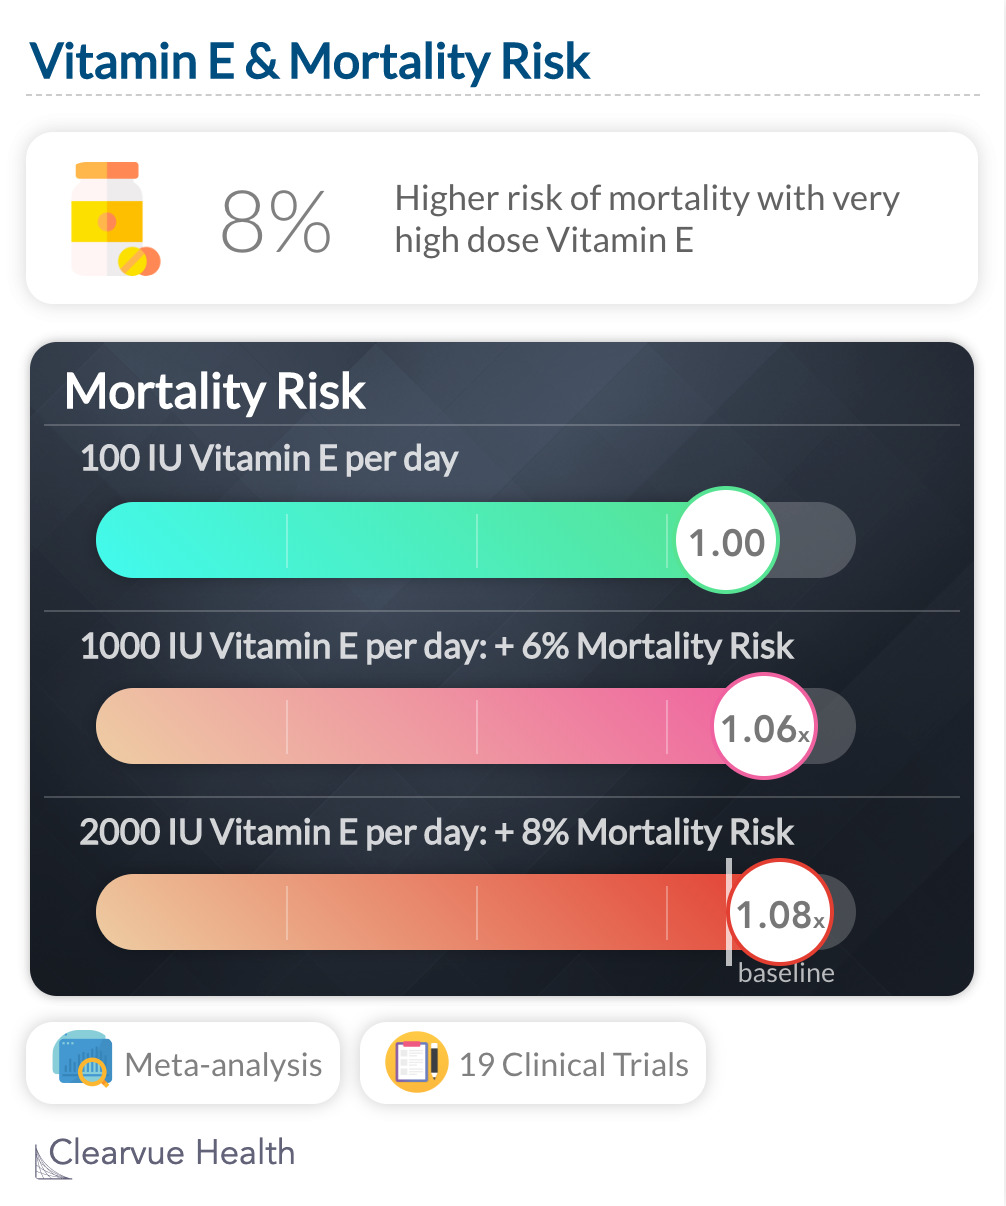 Vitamin E & Mortality Risk